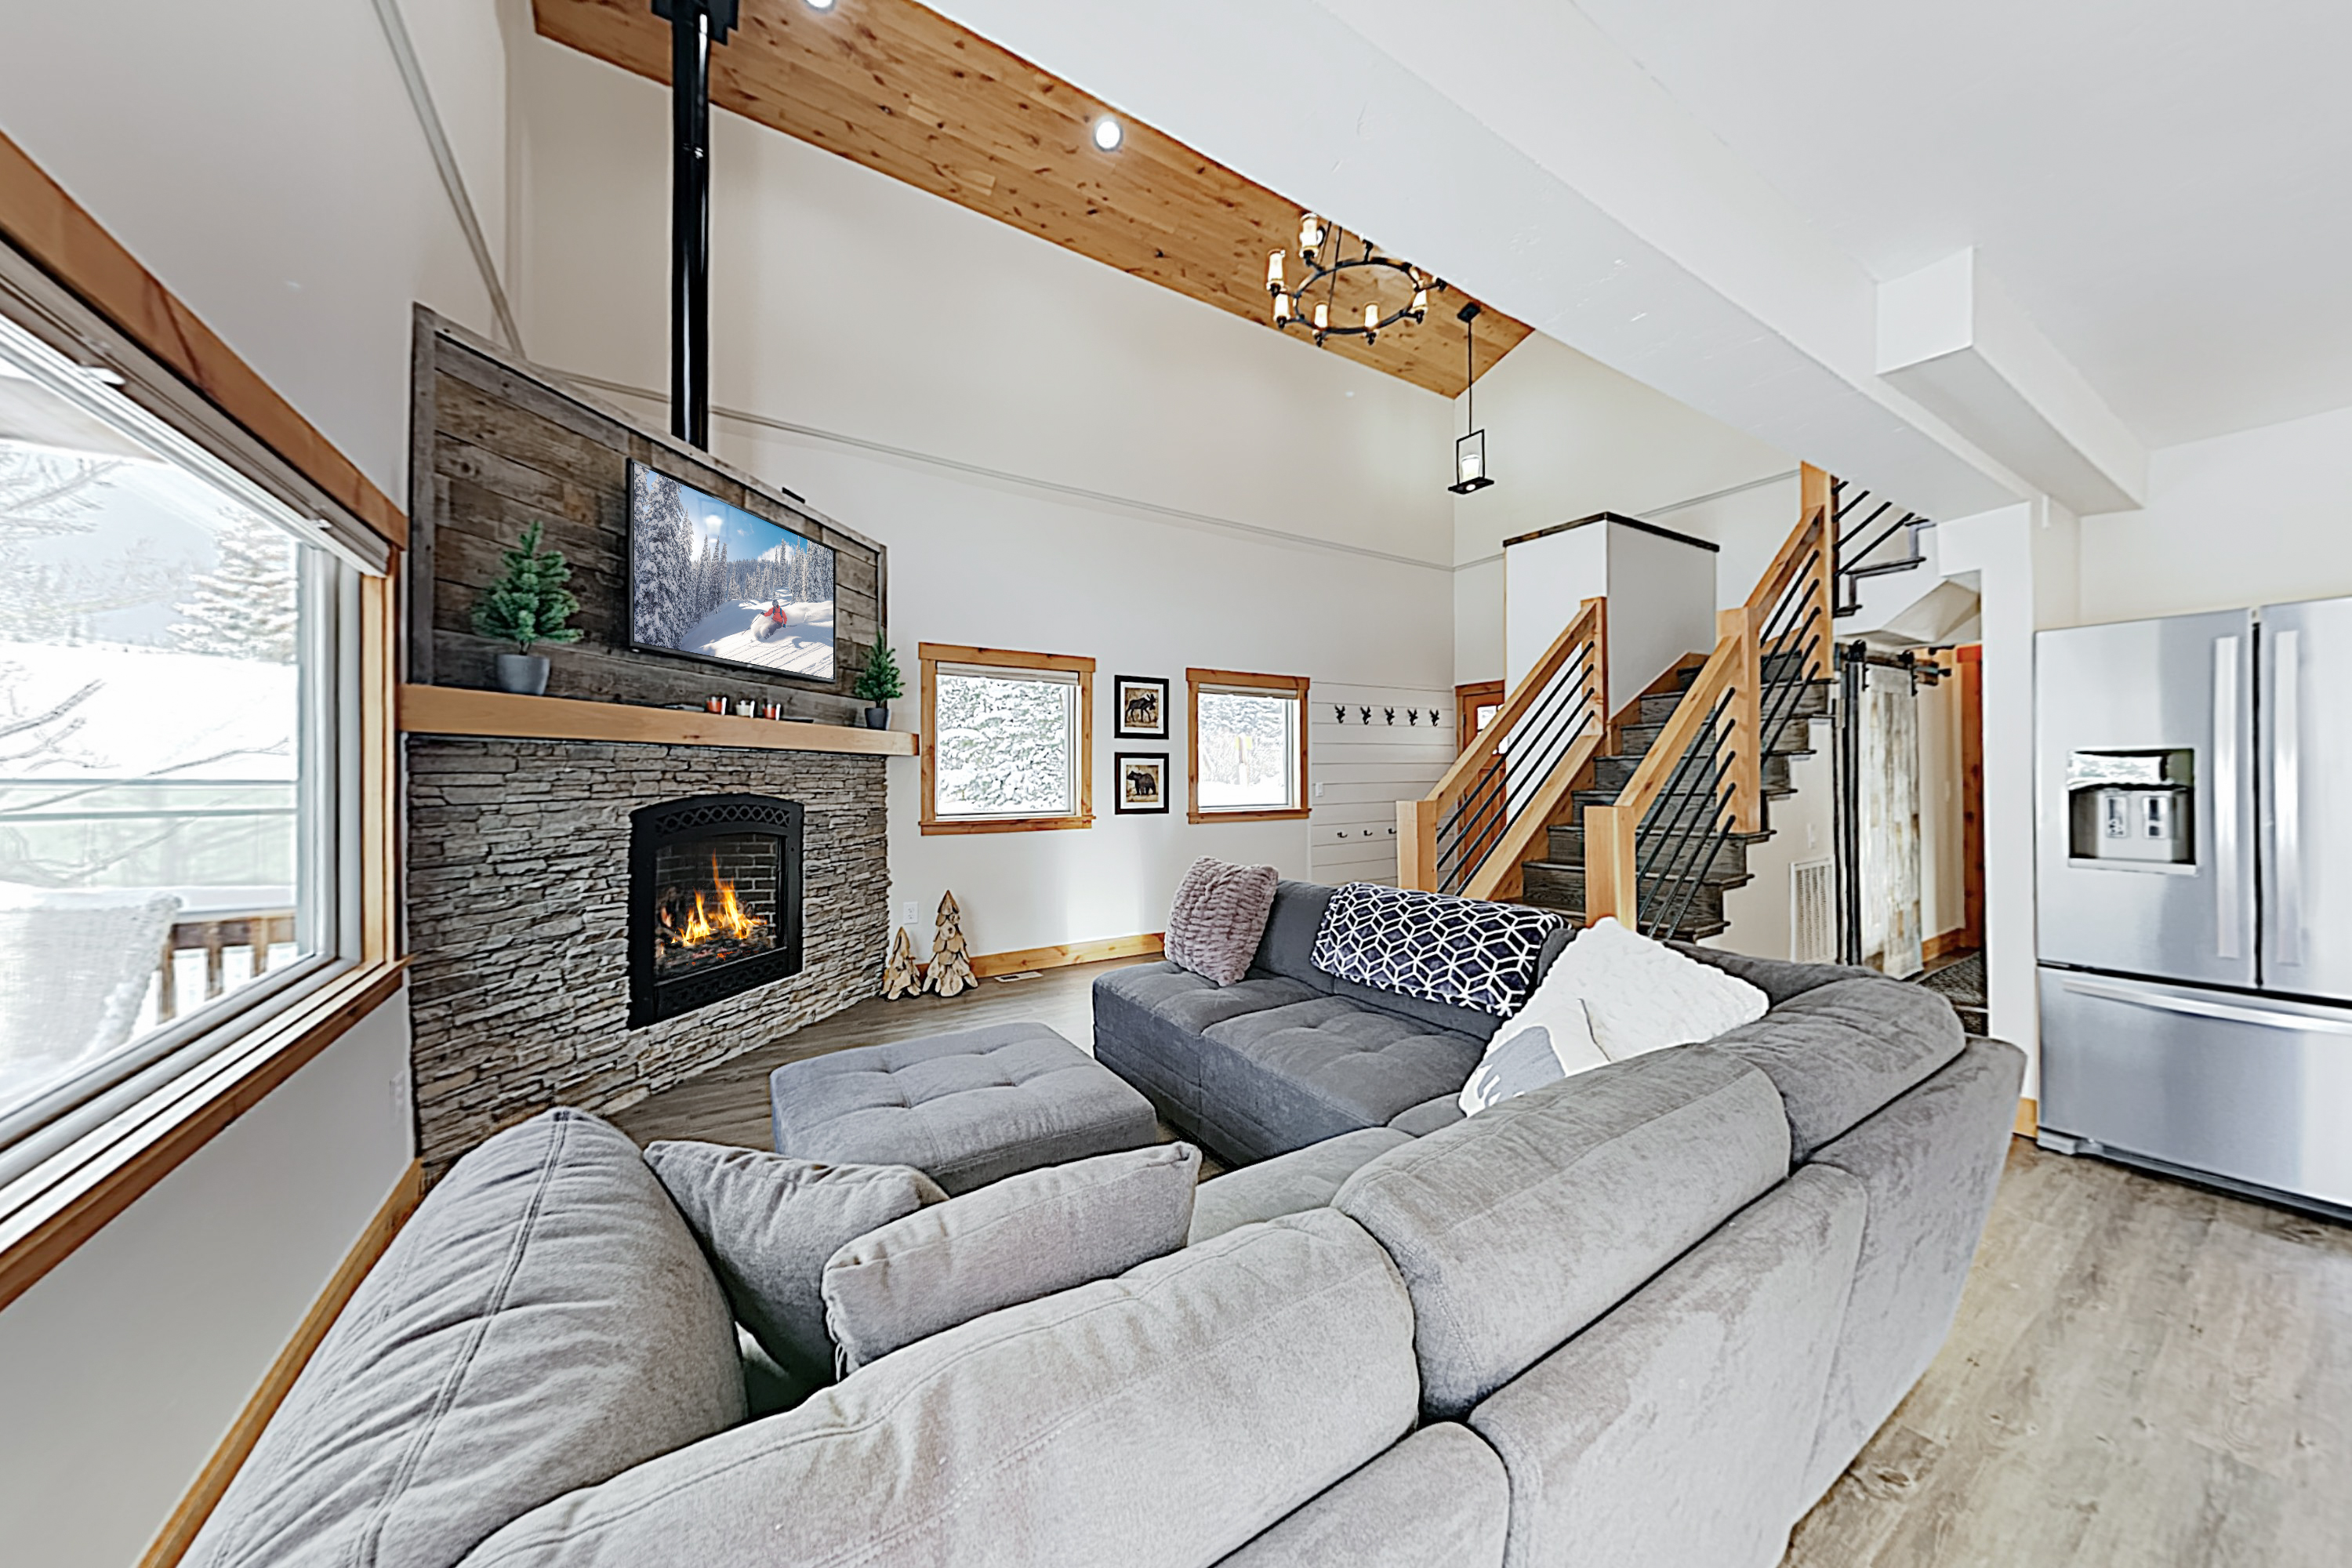 Breckenridge CO Vacation Rental Welcome! This home